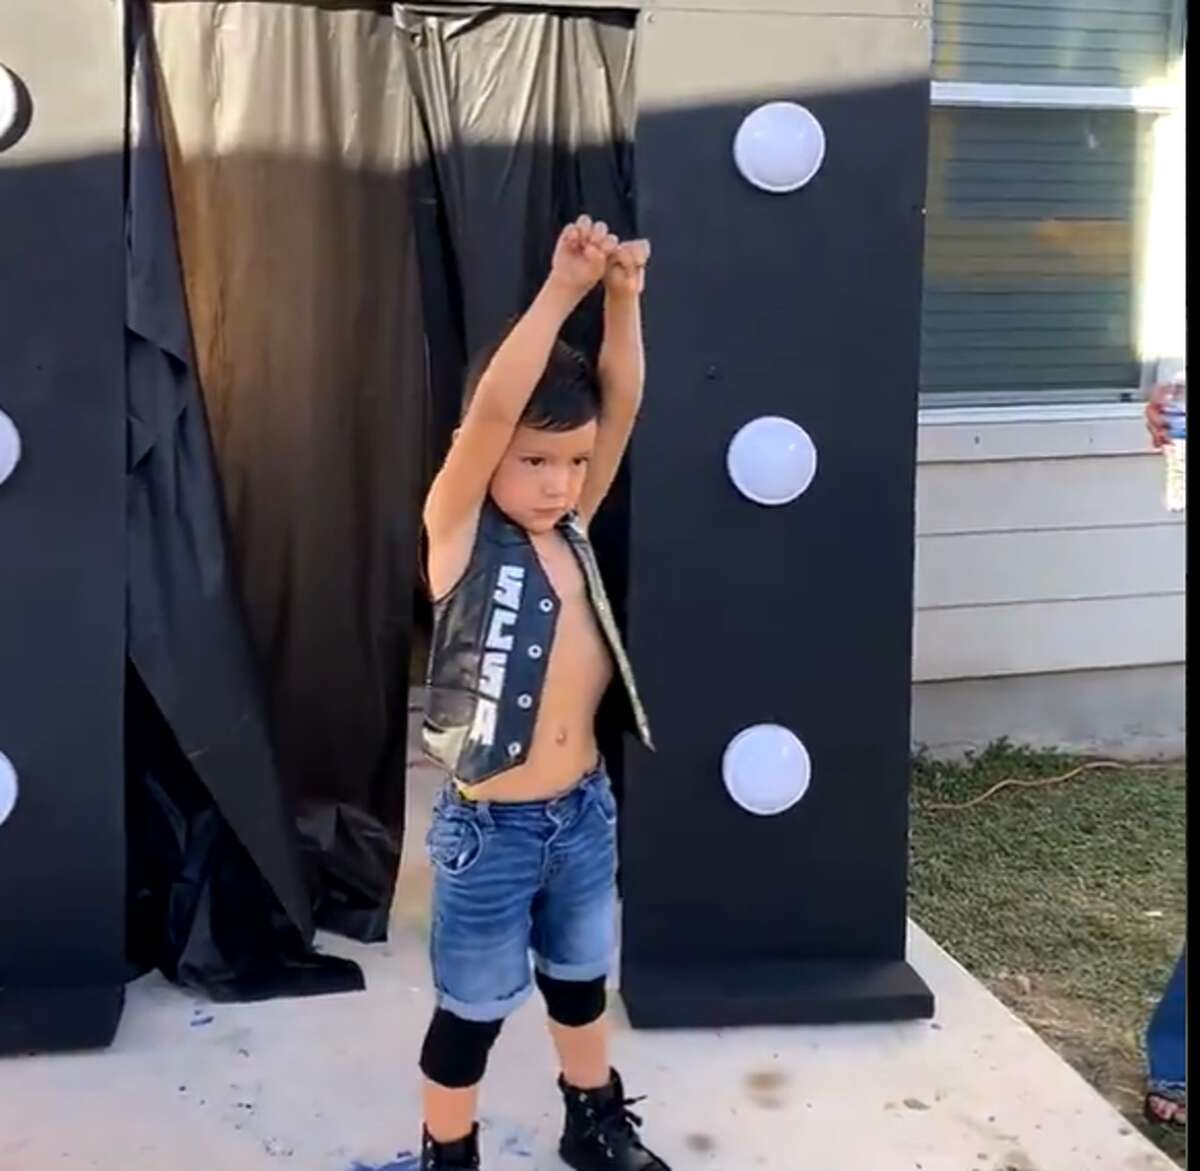 With the iconic blue jean shorts and black skull vest, Mason Casares honored one of his favorite WWE Wrestlers for his fourth birthday: Stone Cold Steve Austin.